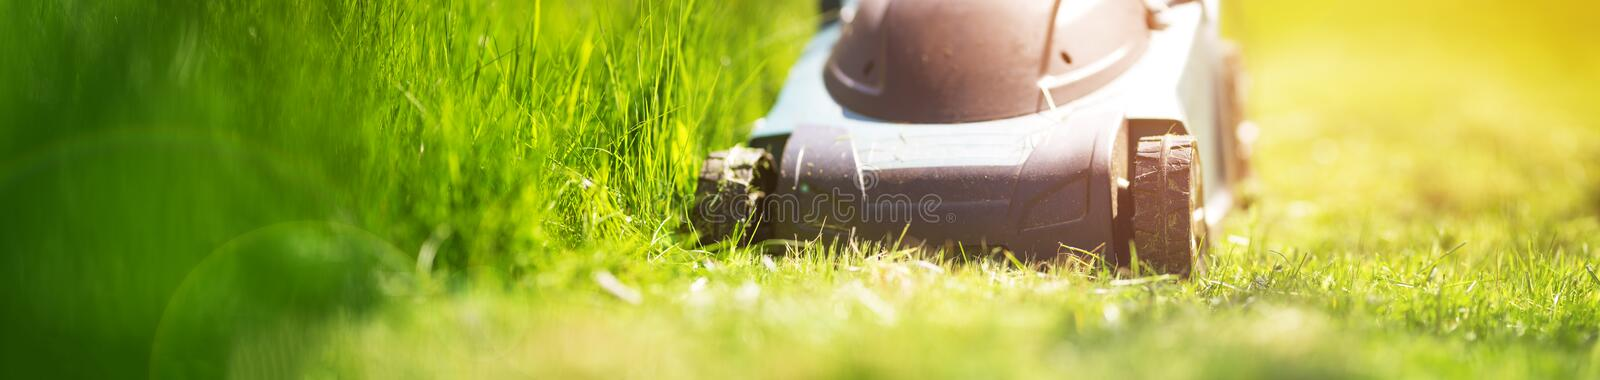 Grass cutter mowing the lawn. In summer stock image